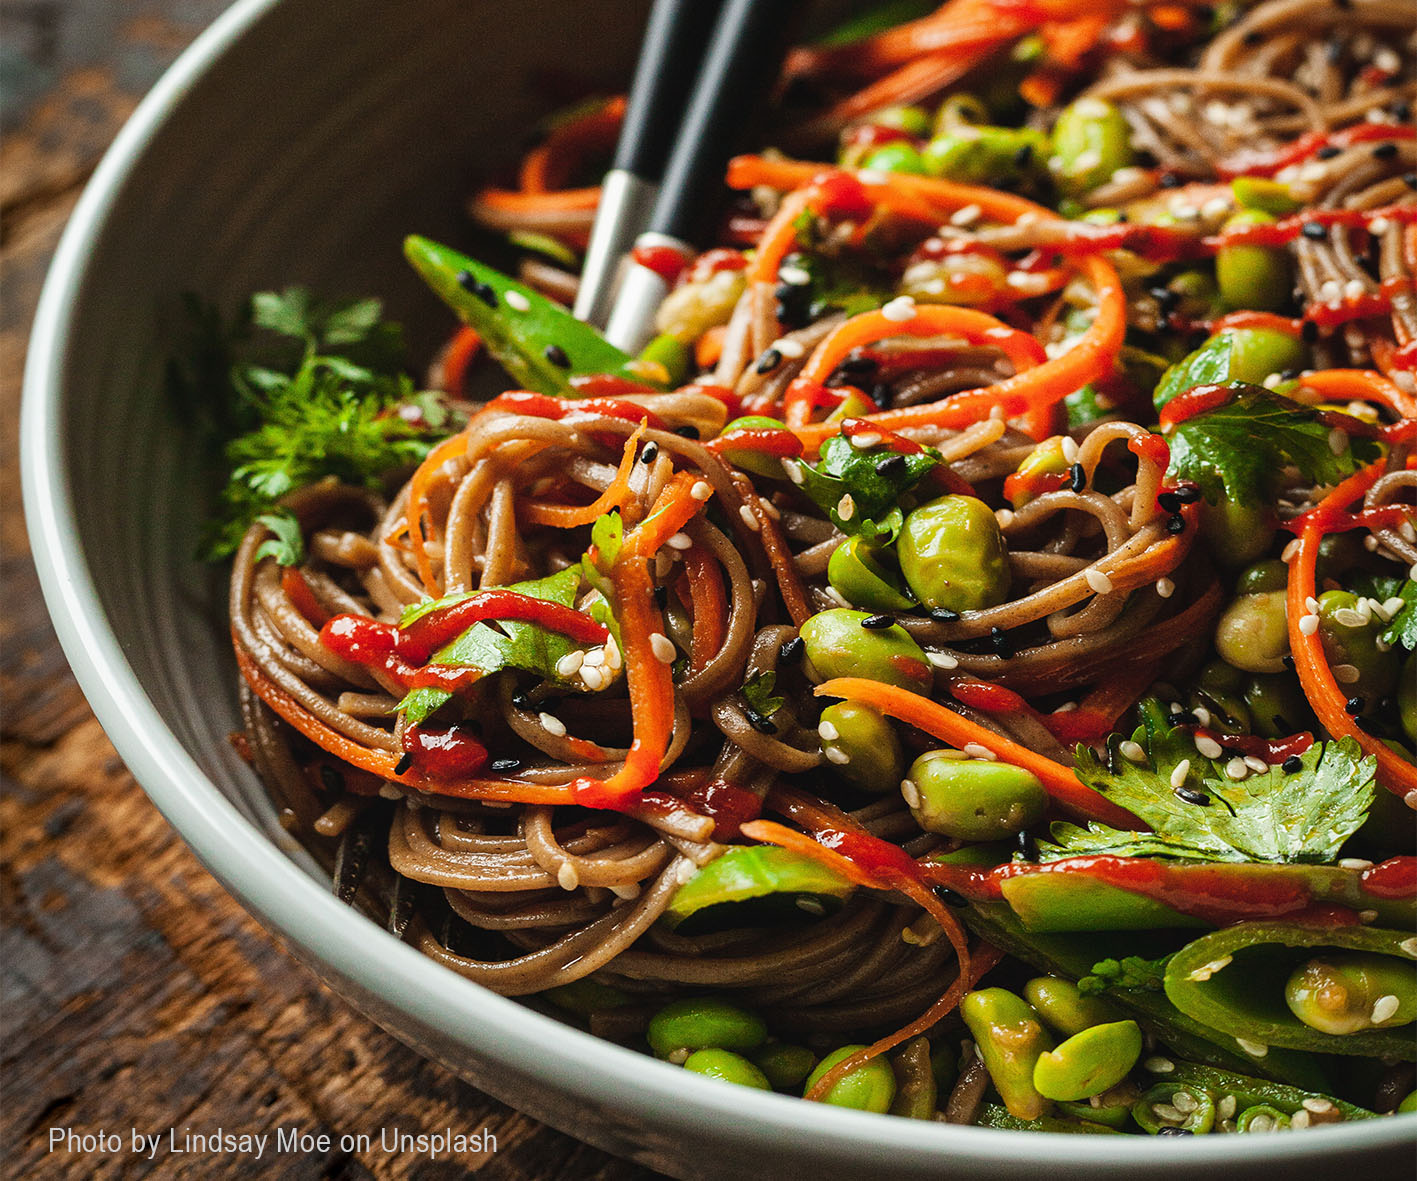 COOKINGPOSTJPEG - SPICY-SOBA-NOODLES-WITH-CHICKEN-VEGETABLE-VERDE